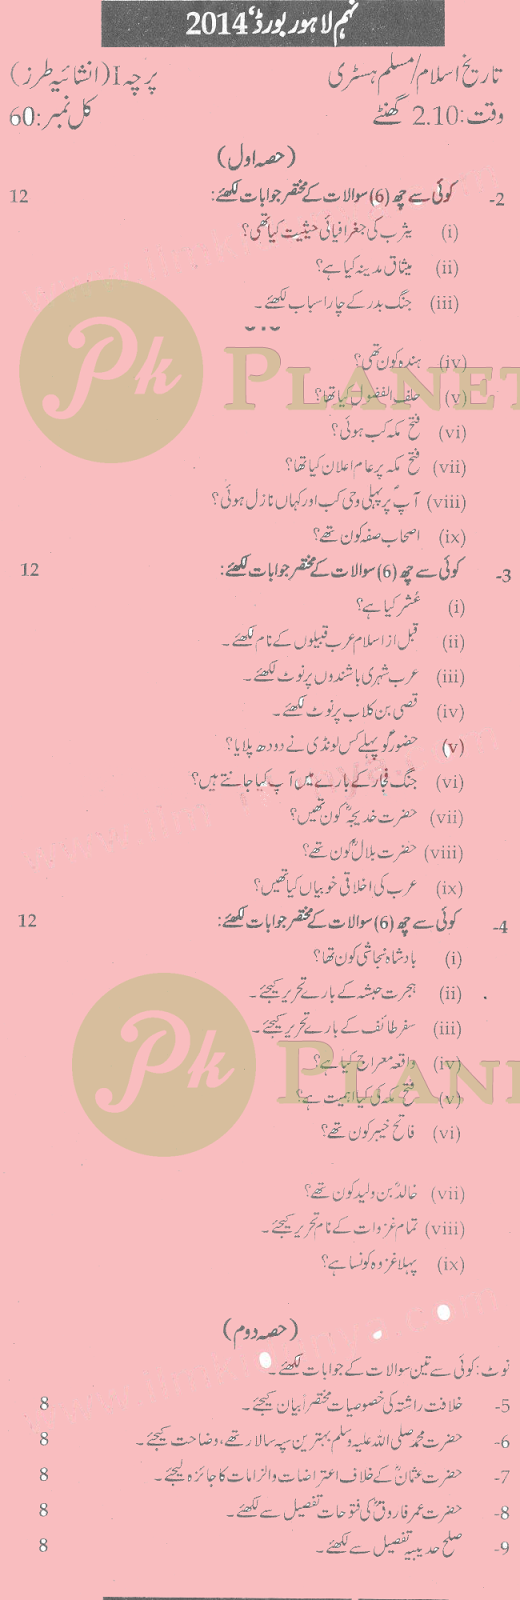 Past Papers of 9th Class Lahore Board 2014 History of Islam